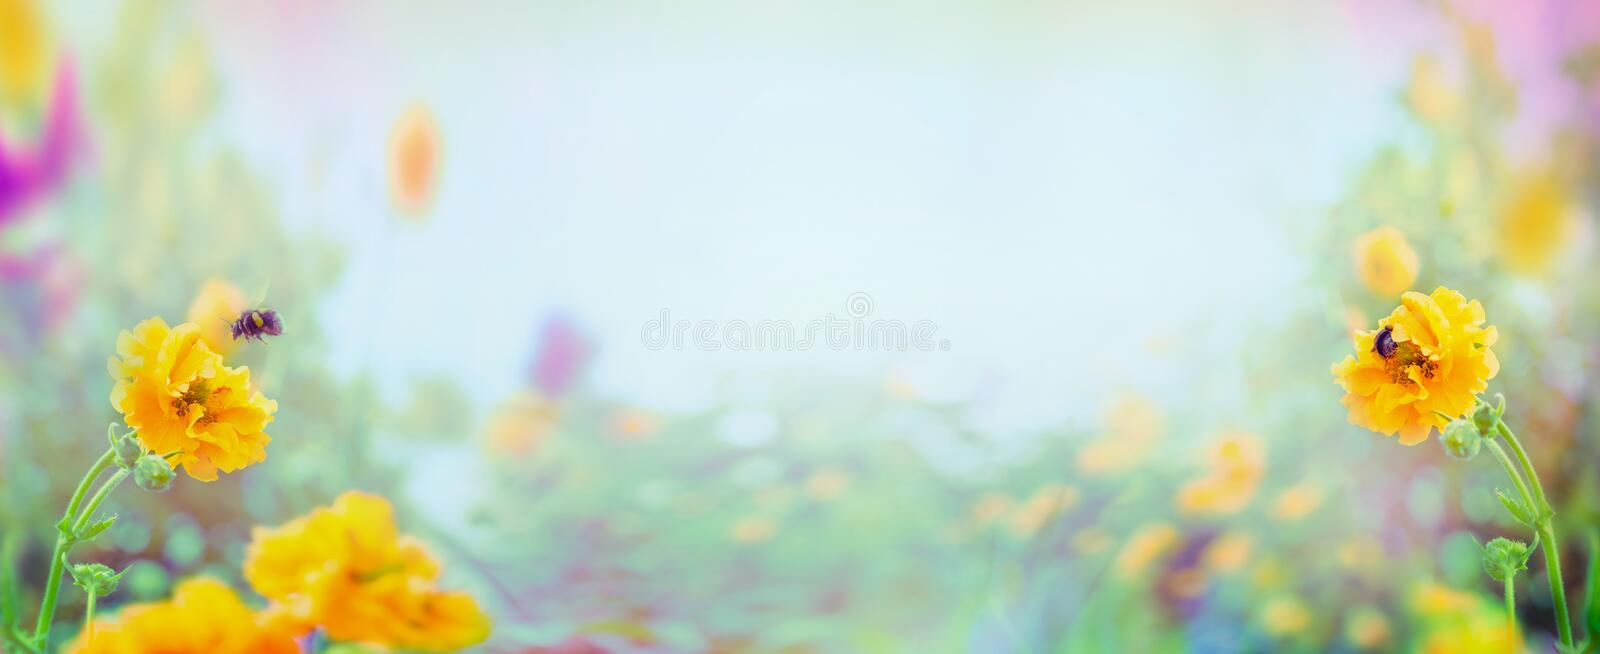 Yellow Geum flowers and bumblebee on blurred summer garden or park background, banner stock photo